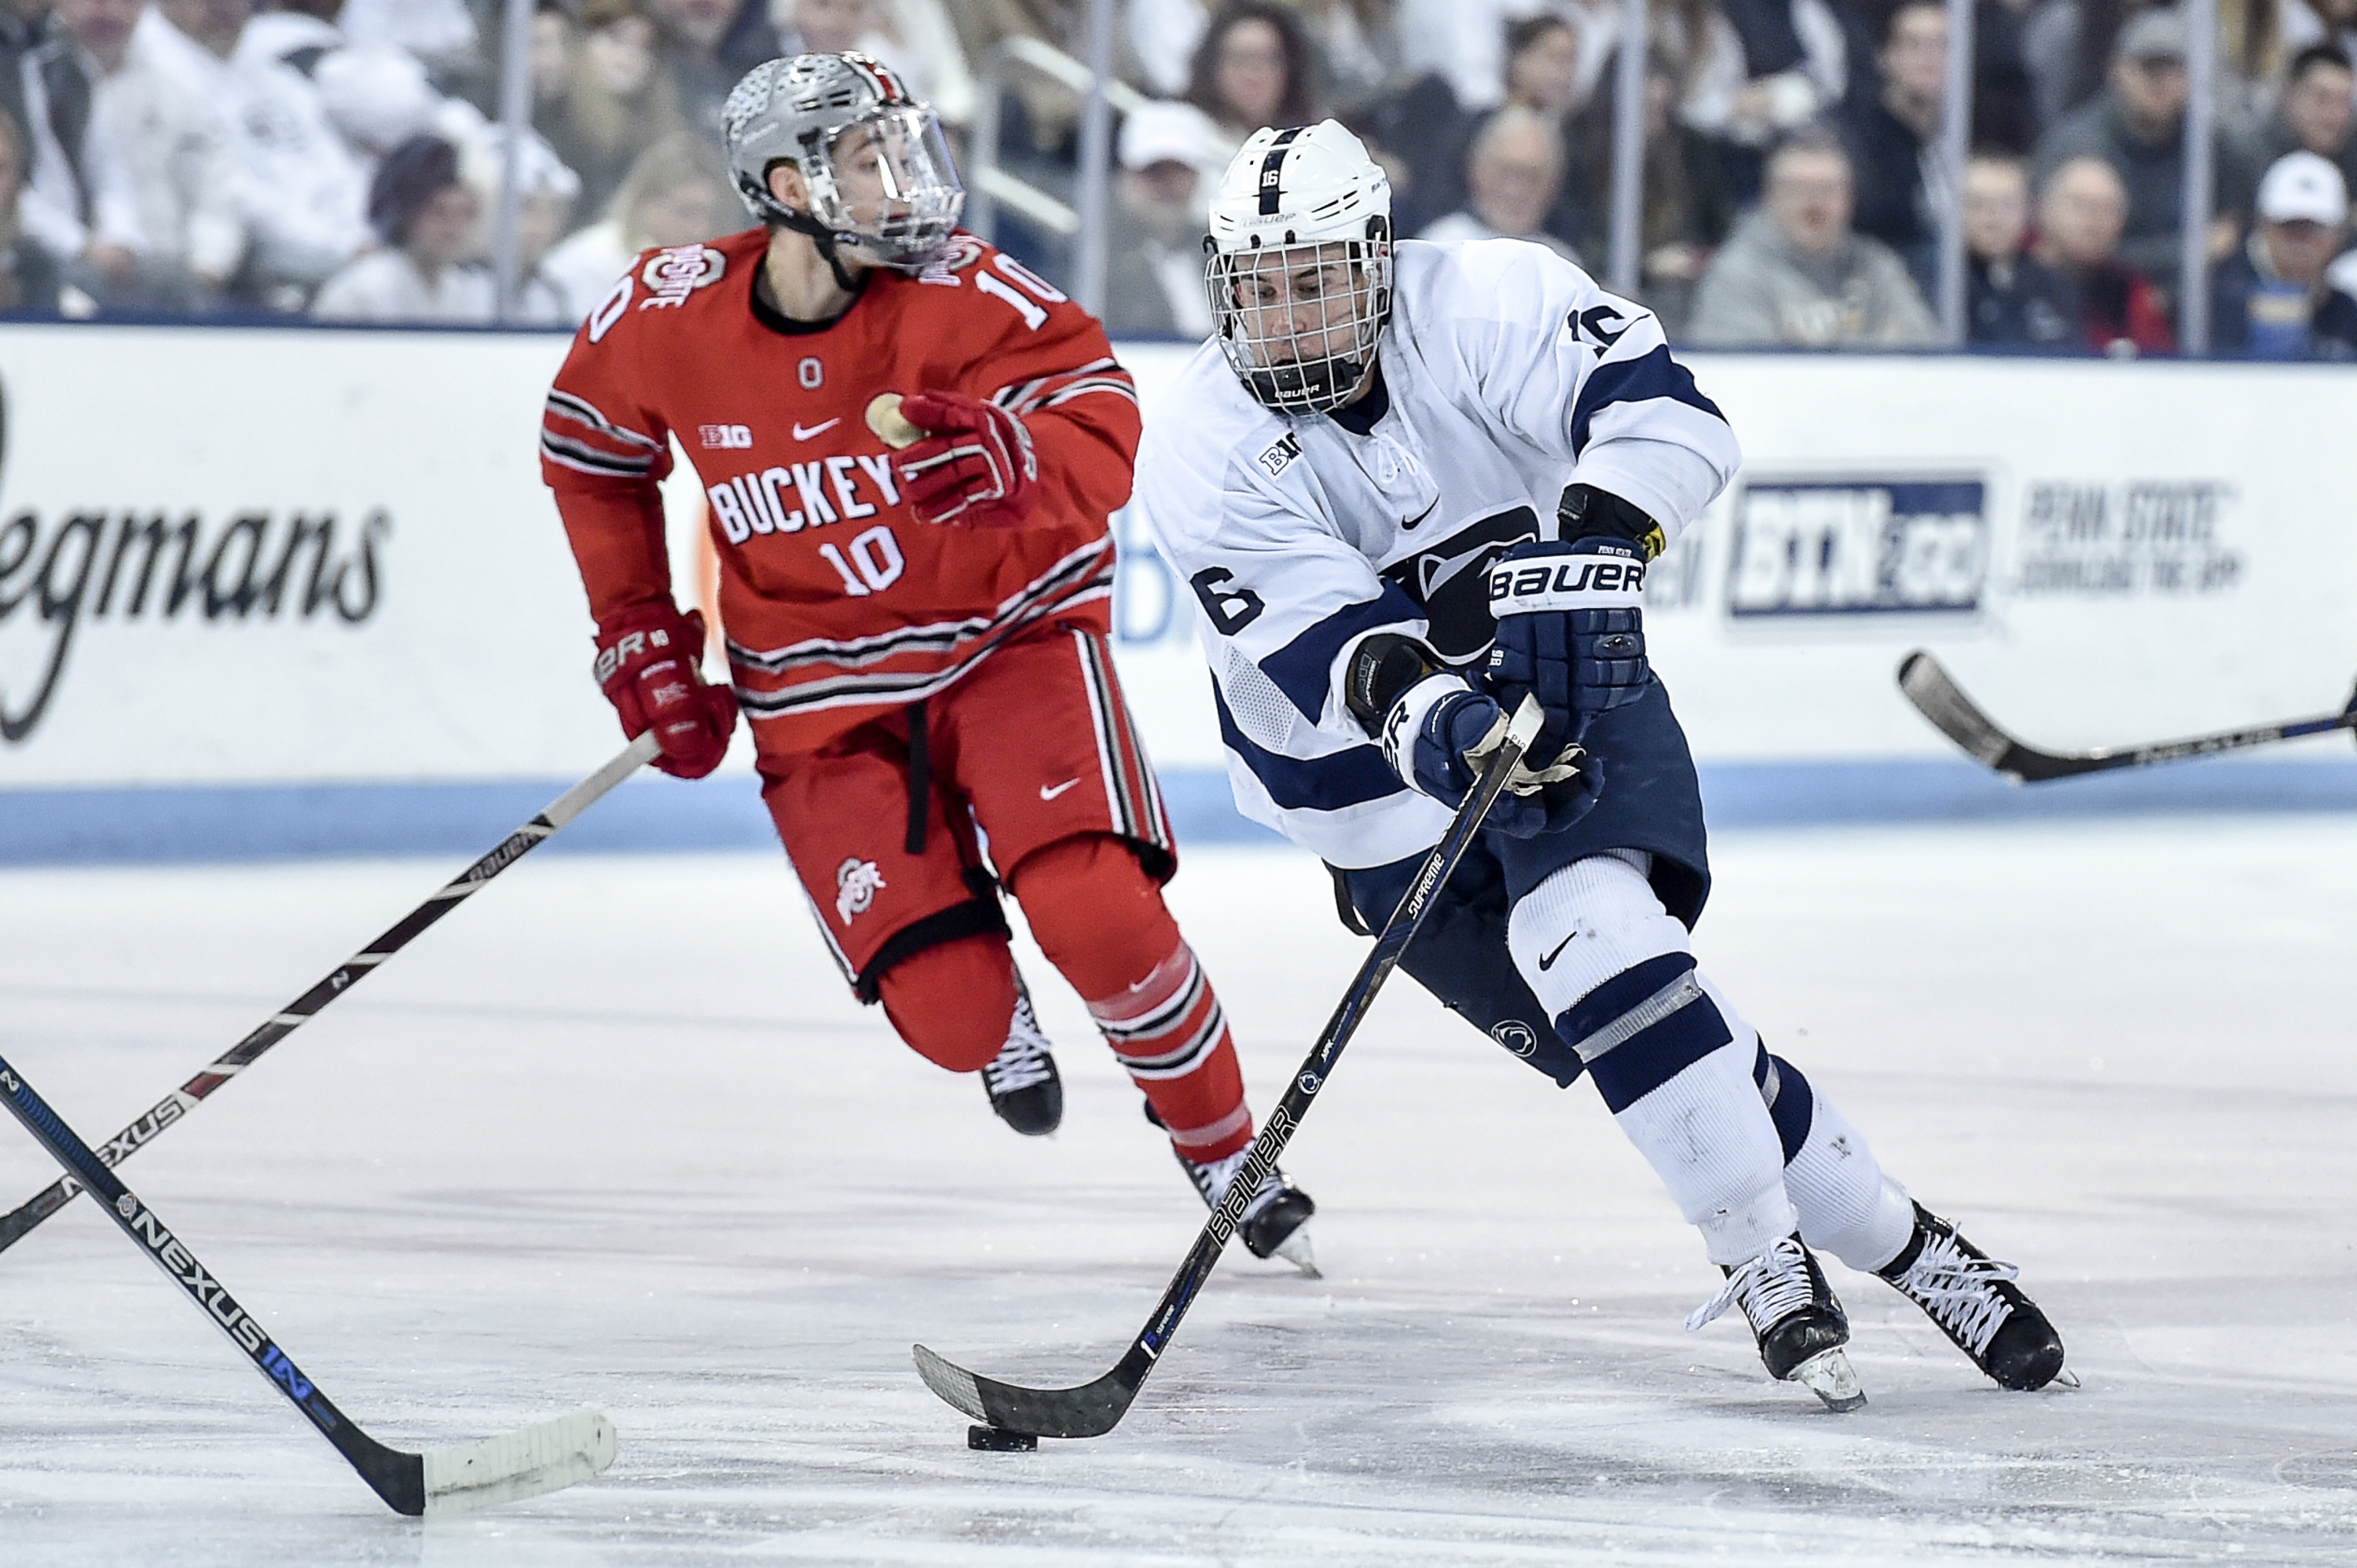 Kenmore East graduate Andrew Sturtz (16), a sophomore at Penn State, is the Nittany Lions' top goal scorer with 21 goals. (Mark Selders/Penn State Athletics)